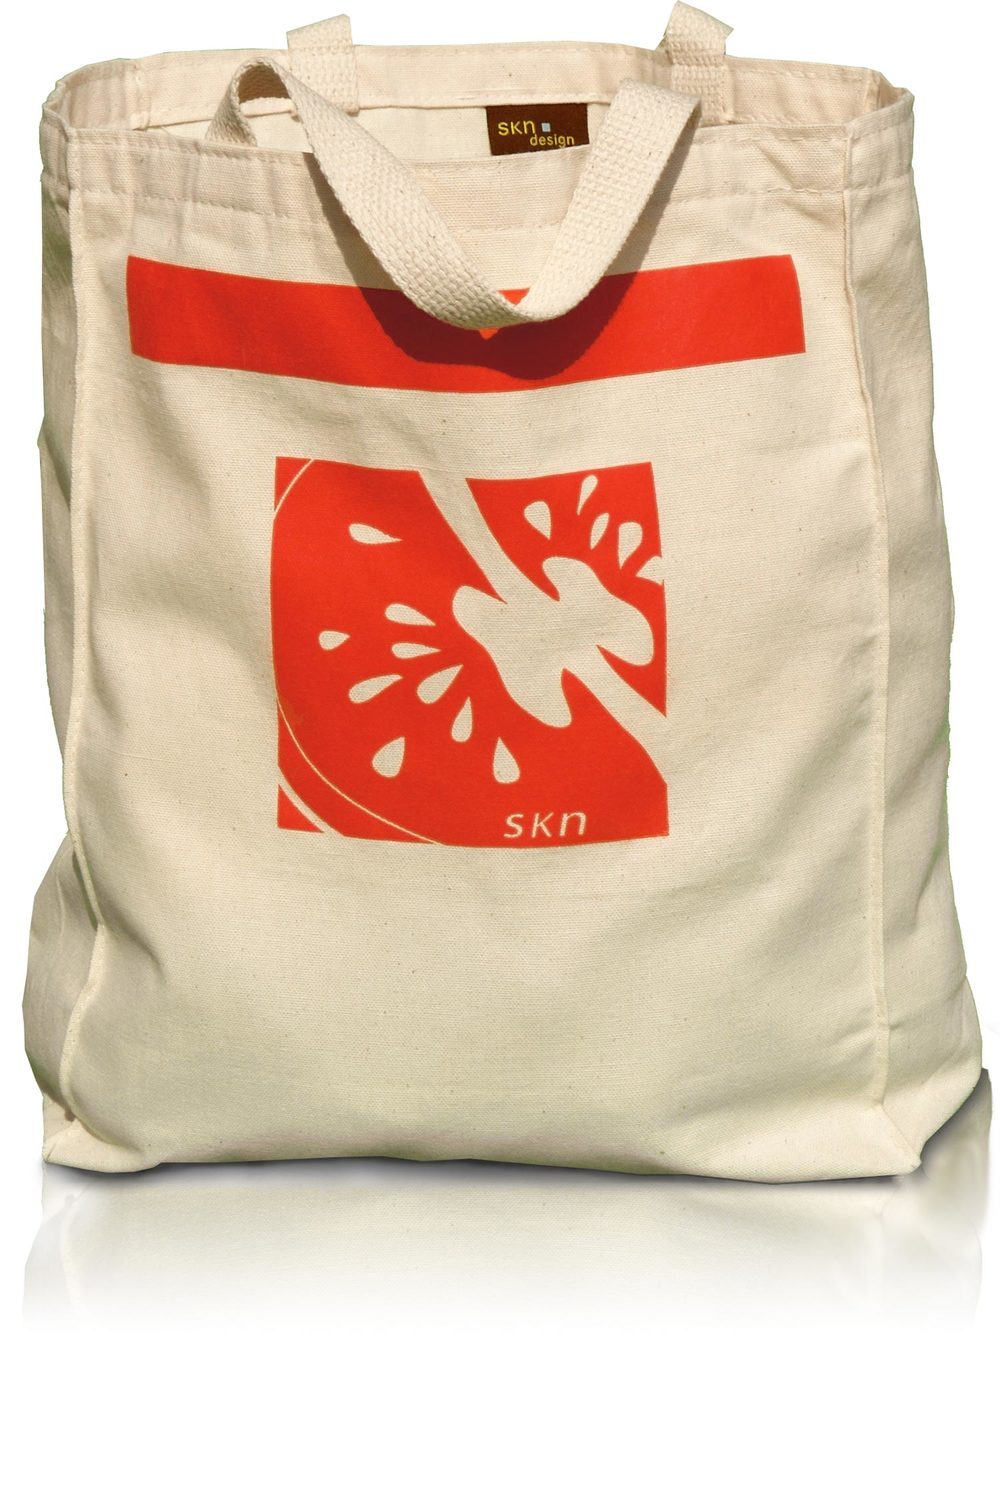 Reusable Grocery Tote—The Tomato Bag